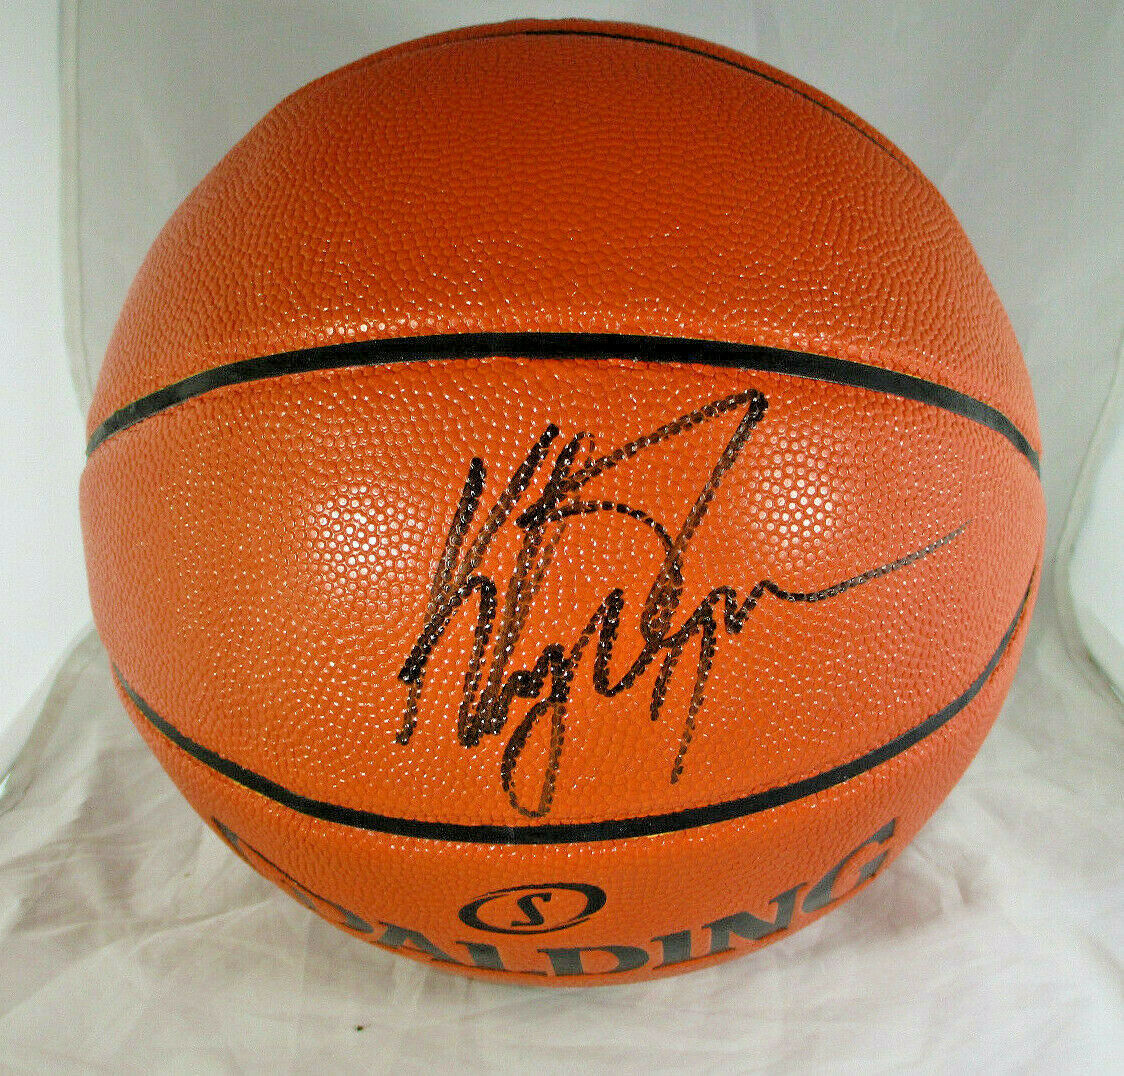 KLAY THOMPSON / GOLDEN STATE WARRIORS / AUTOGRAPHED FULL SIZE BASKETBALL / COA